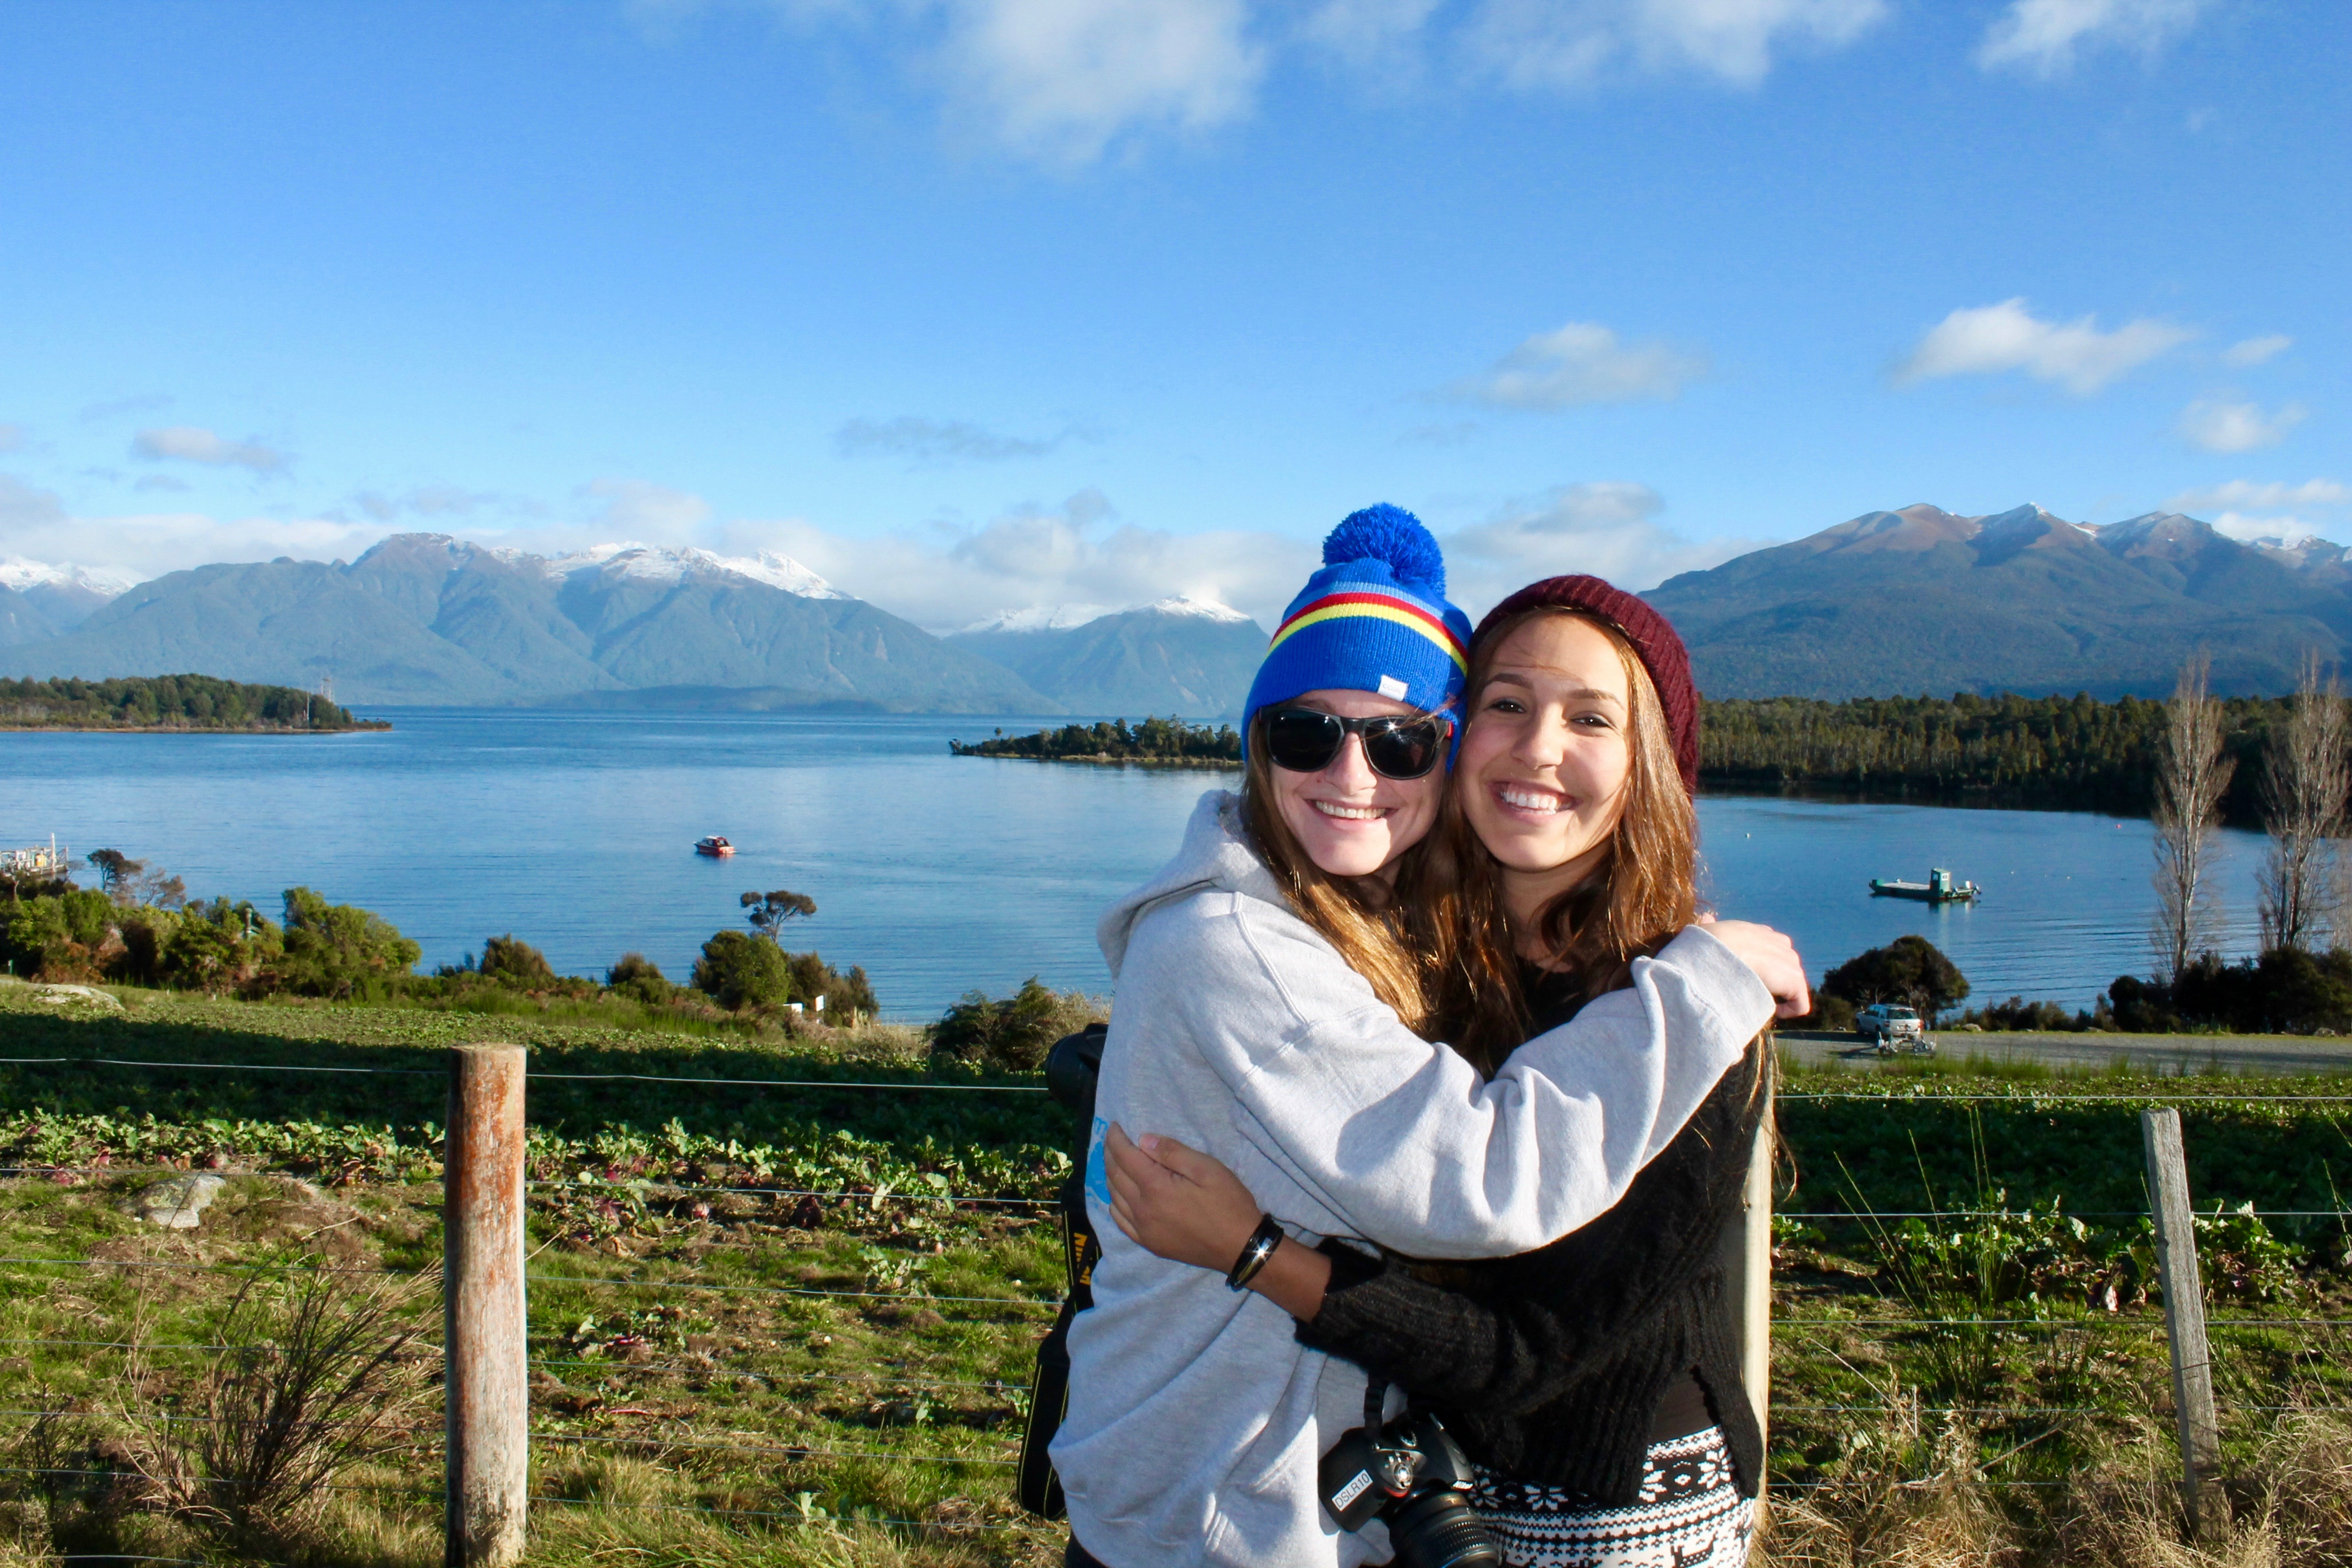 Summer Program - Adventure/Trips | Travel For Teens: Australia and New Zealand for Older Teens